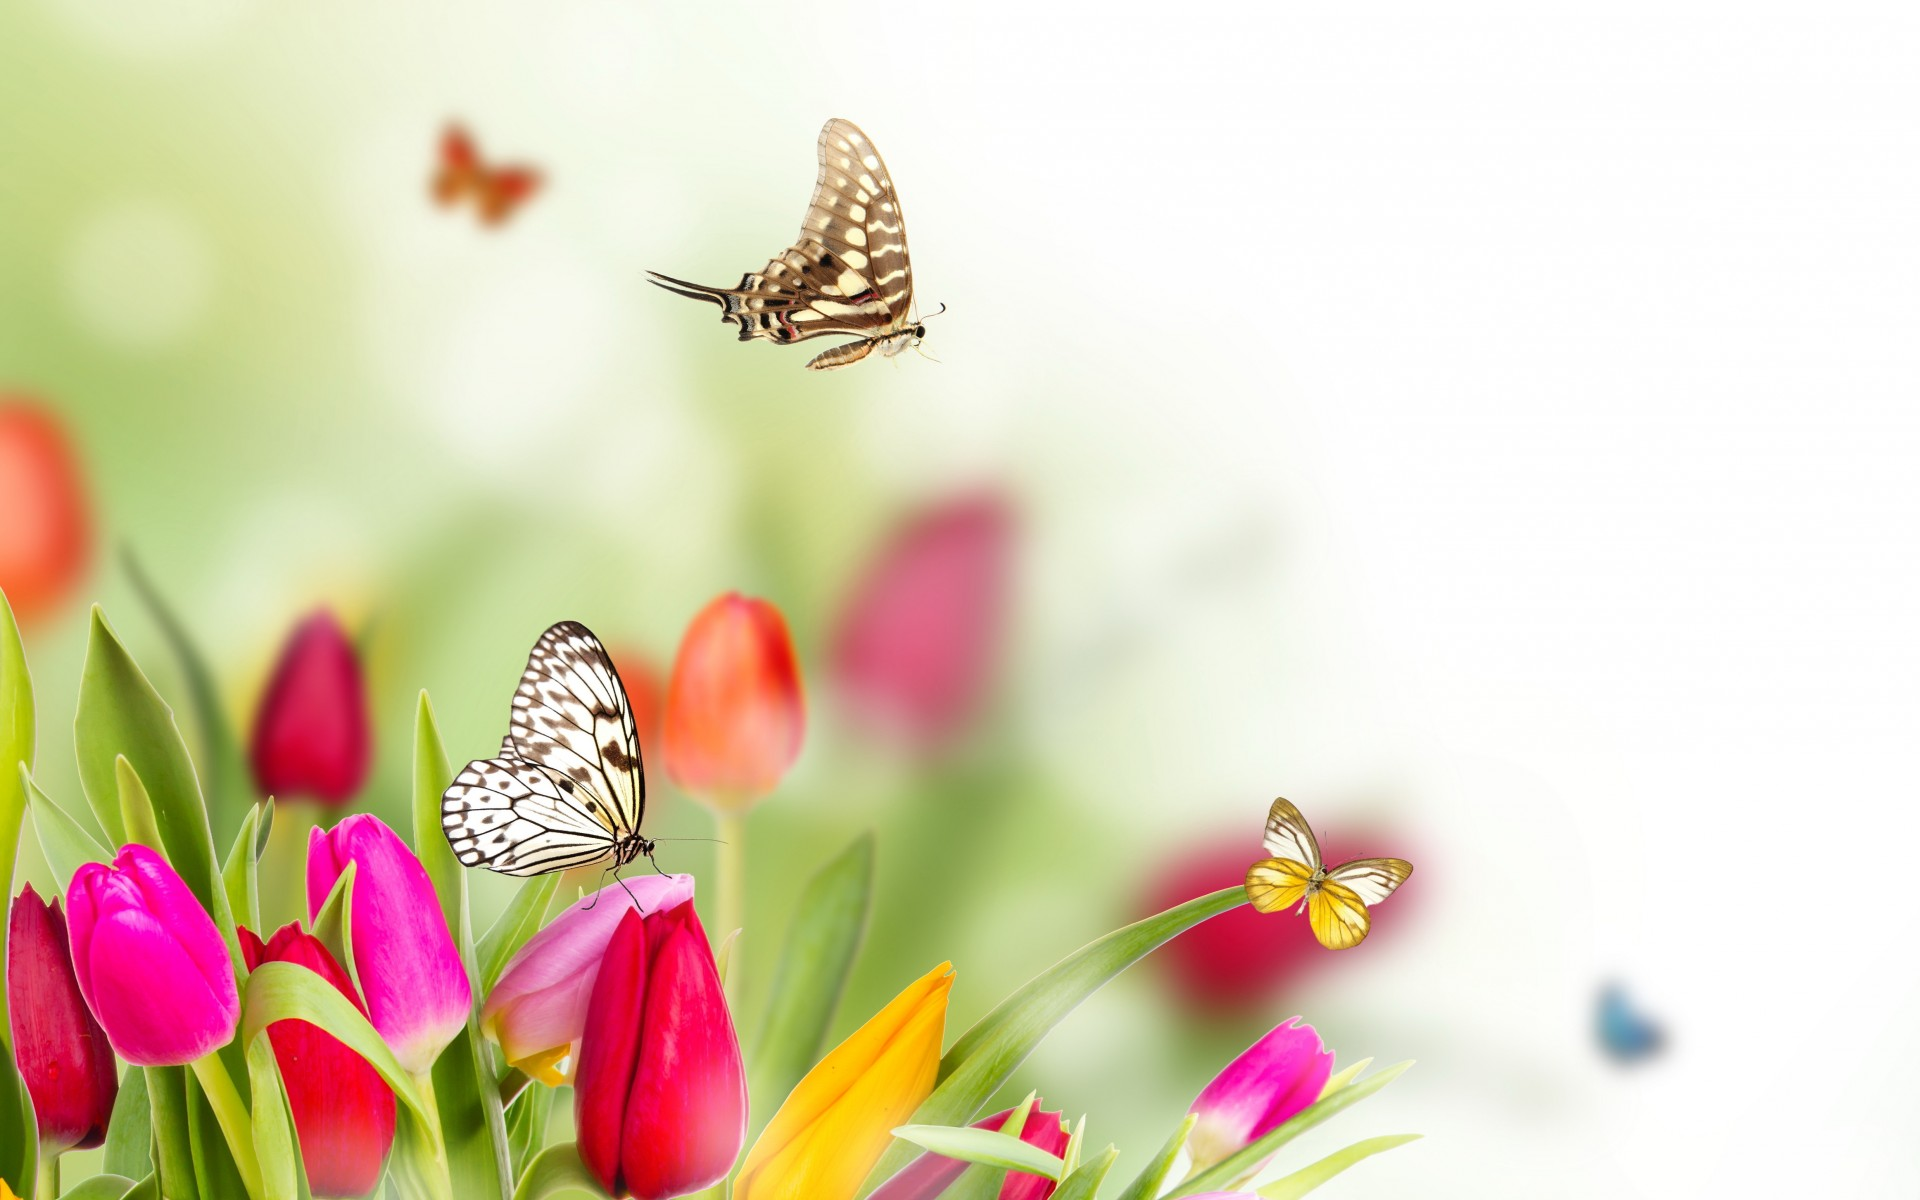 Spring flower background sf wallpaper collection of flowers and butterflies wallpaper on hdwallpapers mightylinksfo